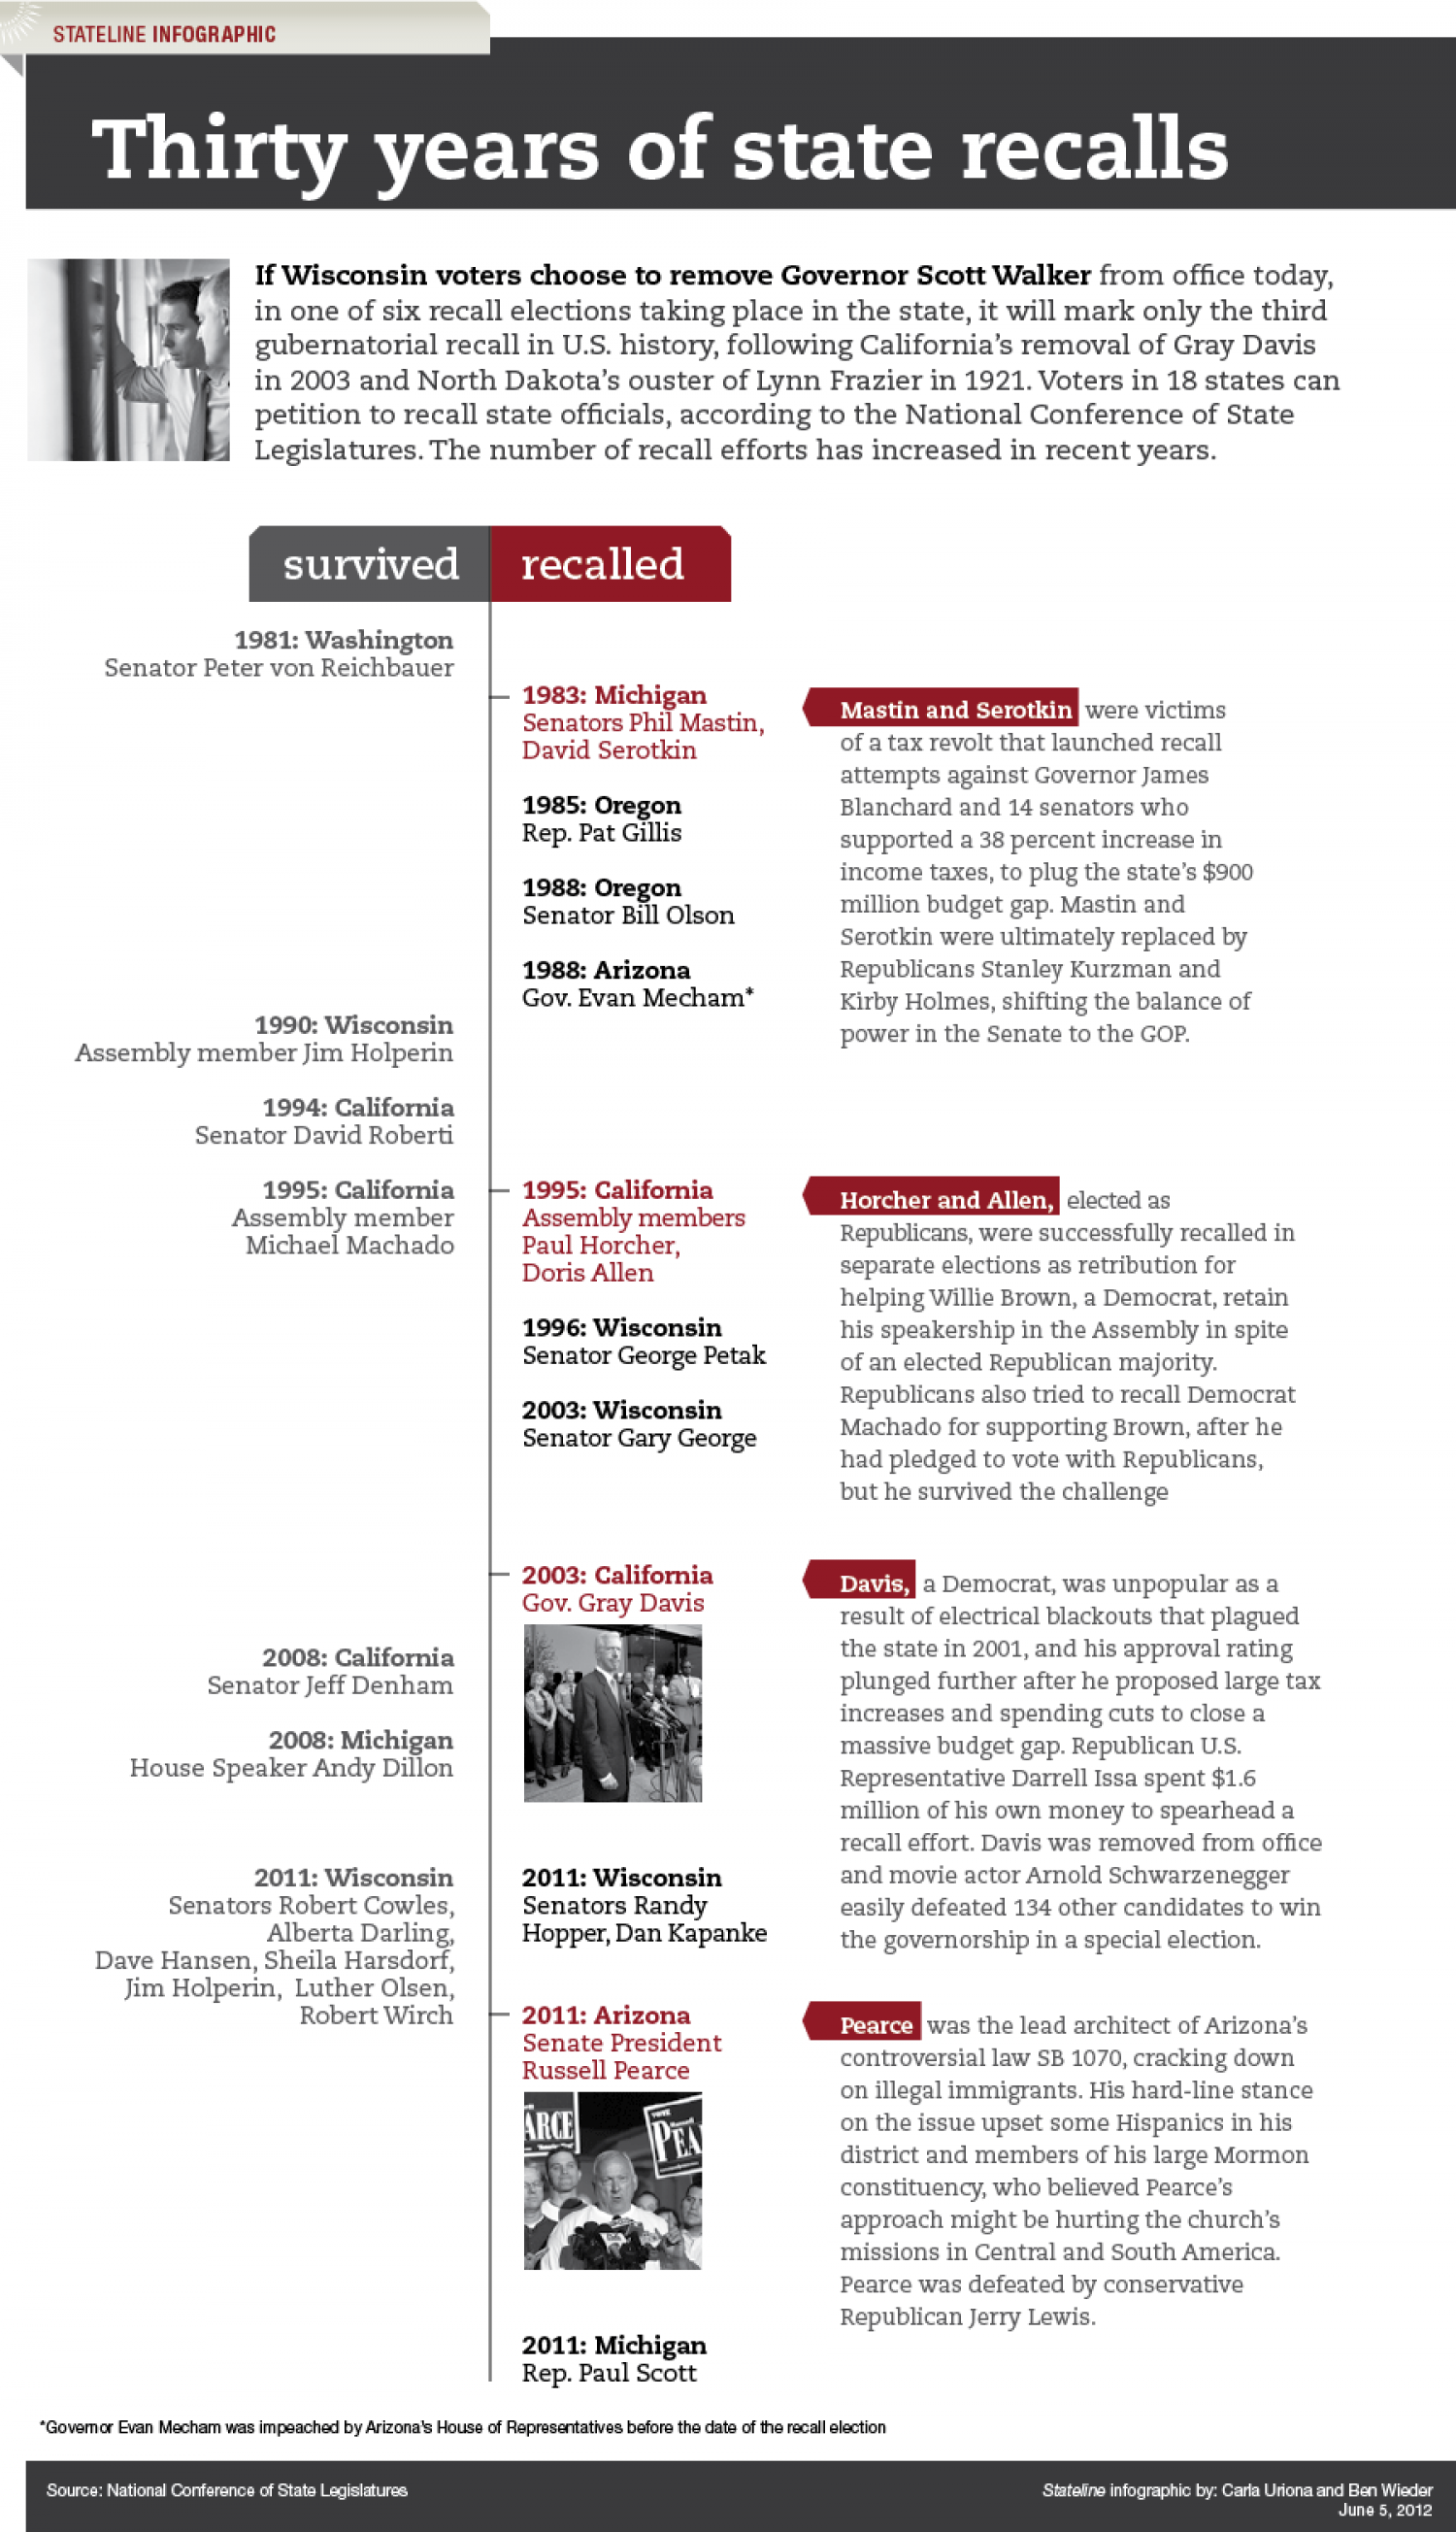 Thirty years of state legislative recalls Infographic